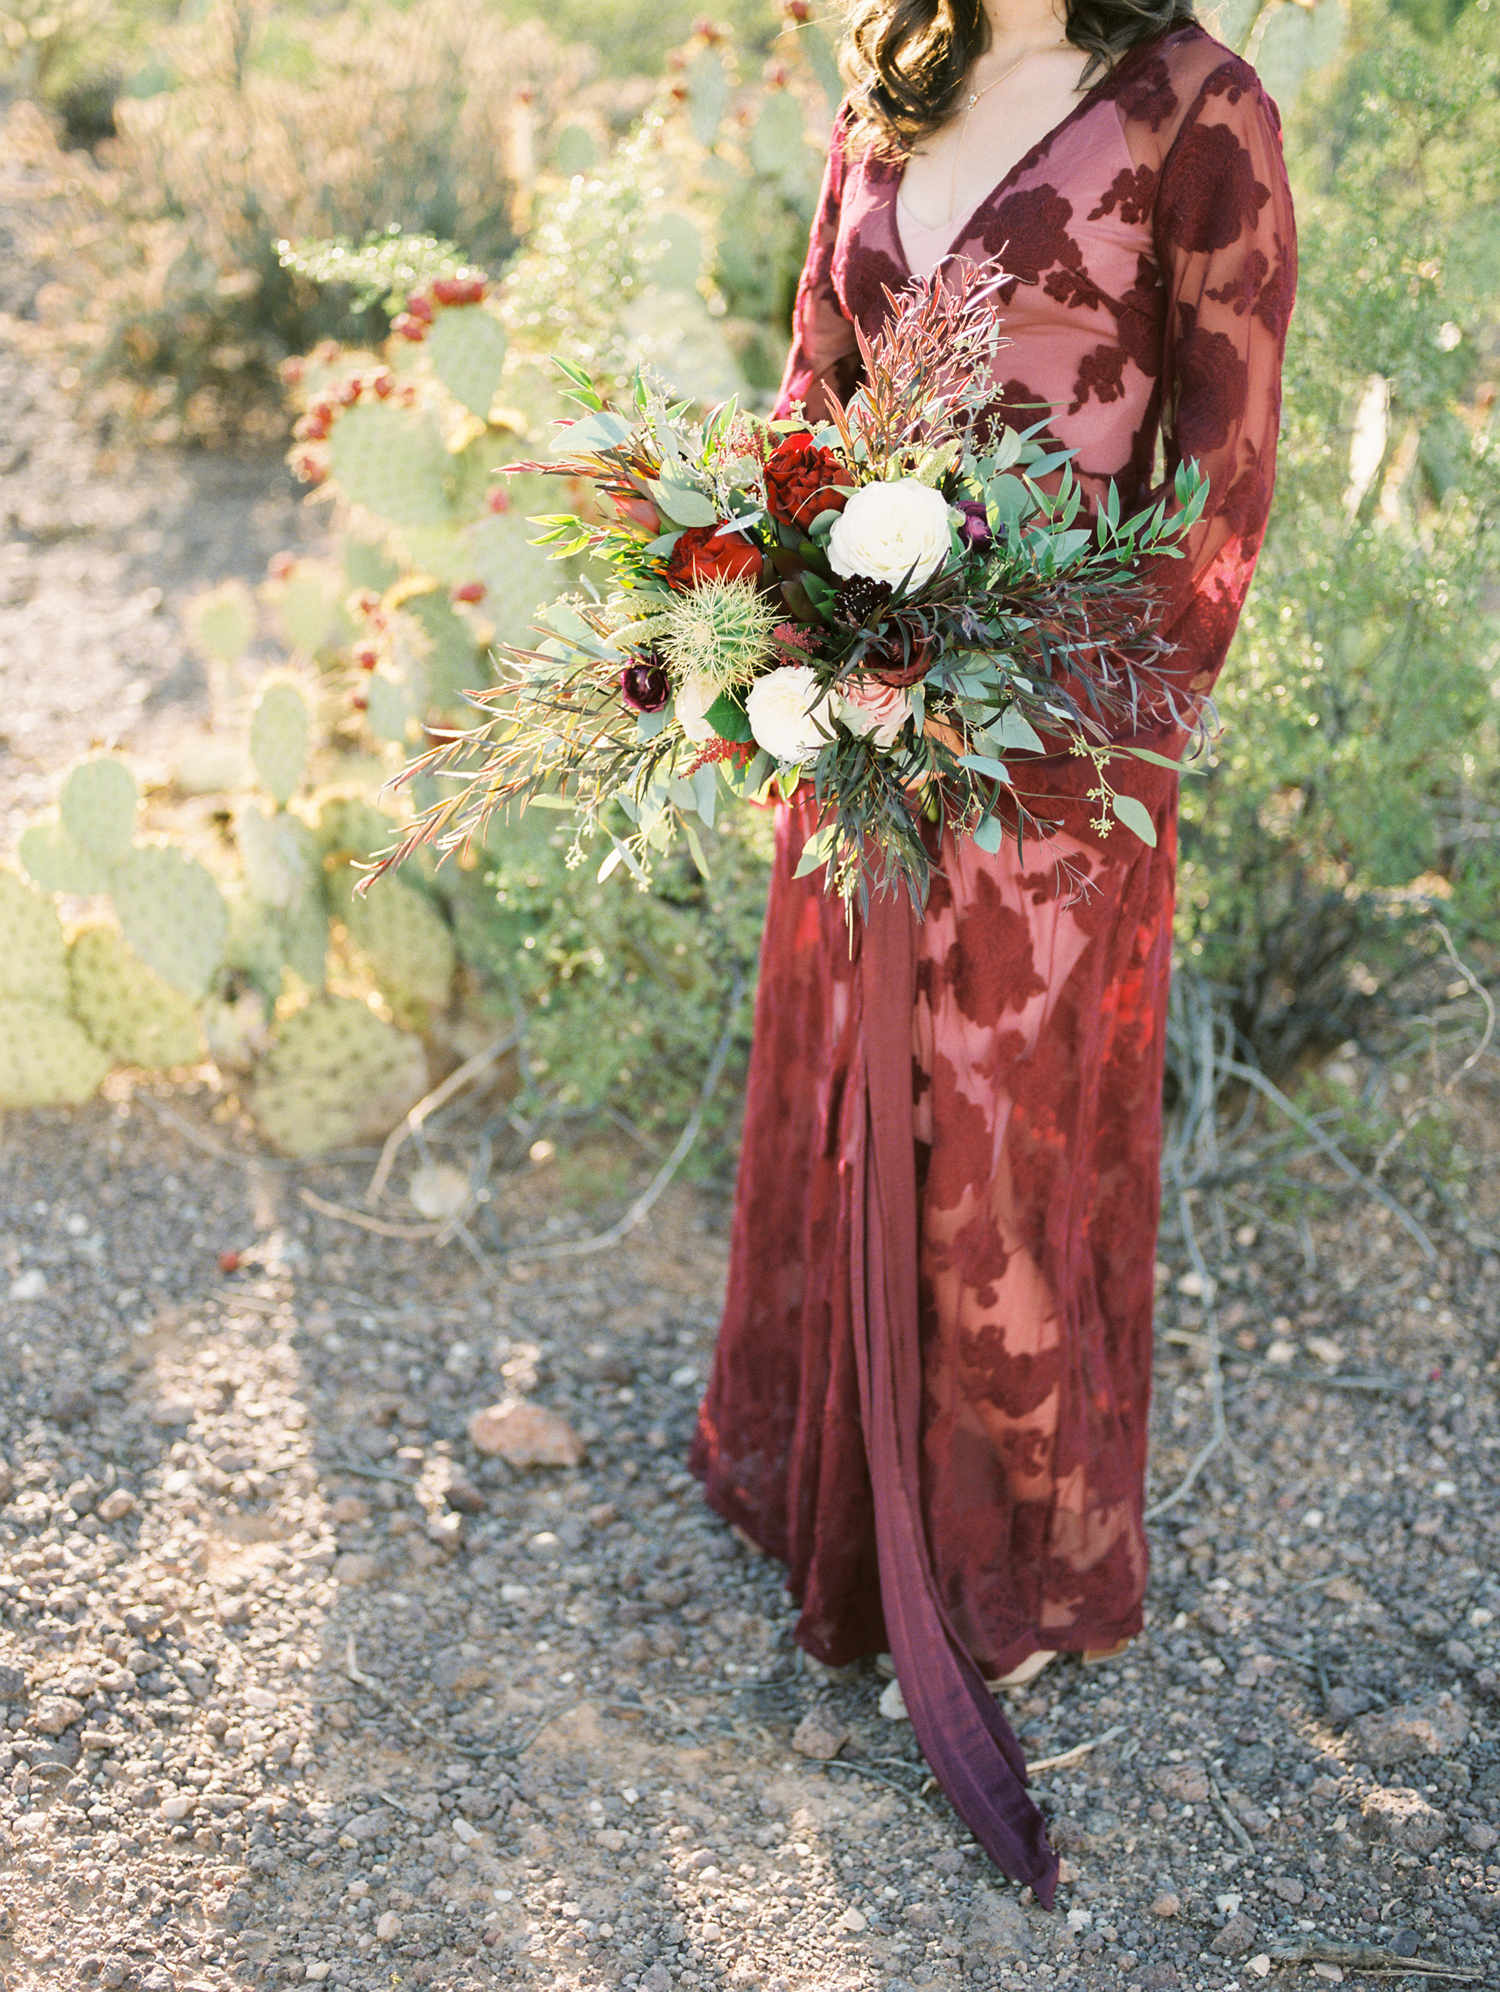 Stunning burgundy lace wedding dress paired with a fall desert bridal bouquet with cactus